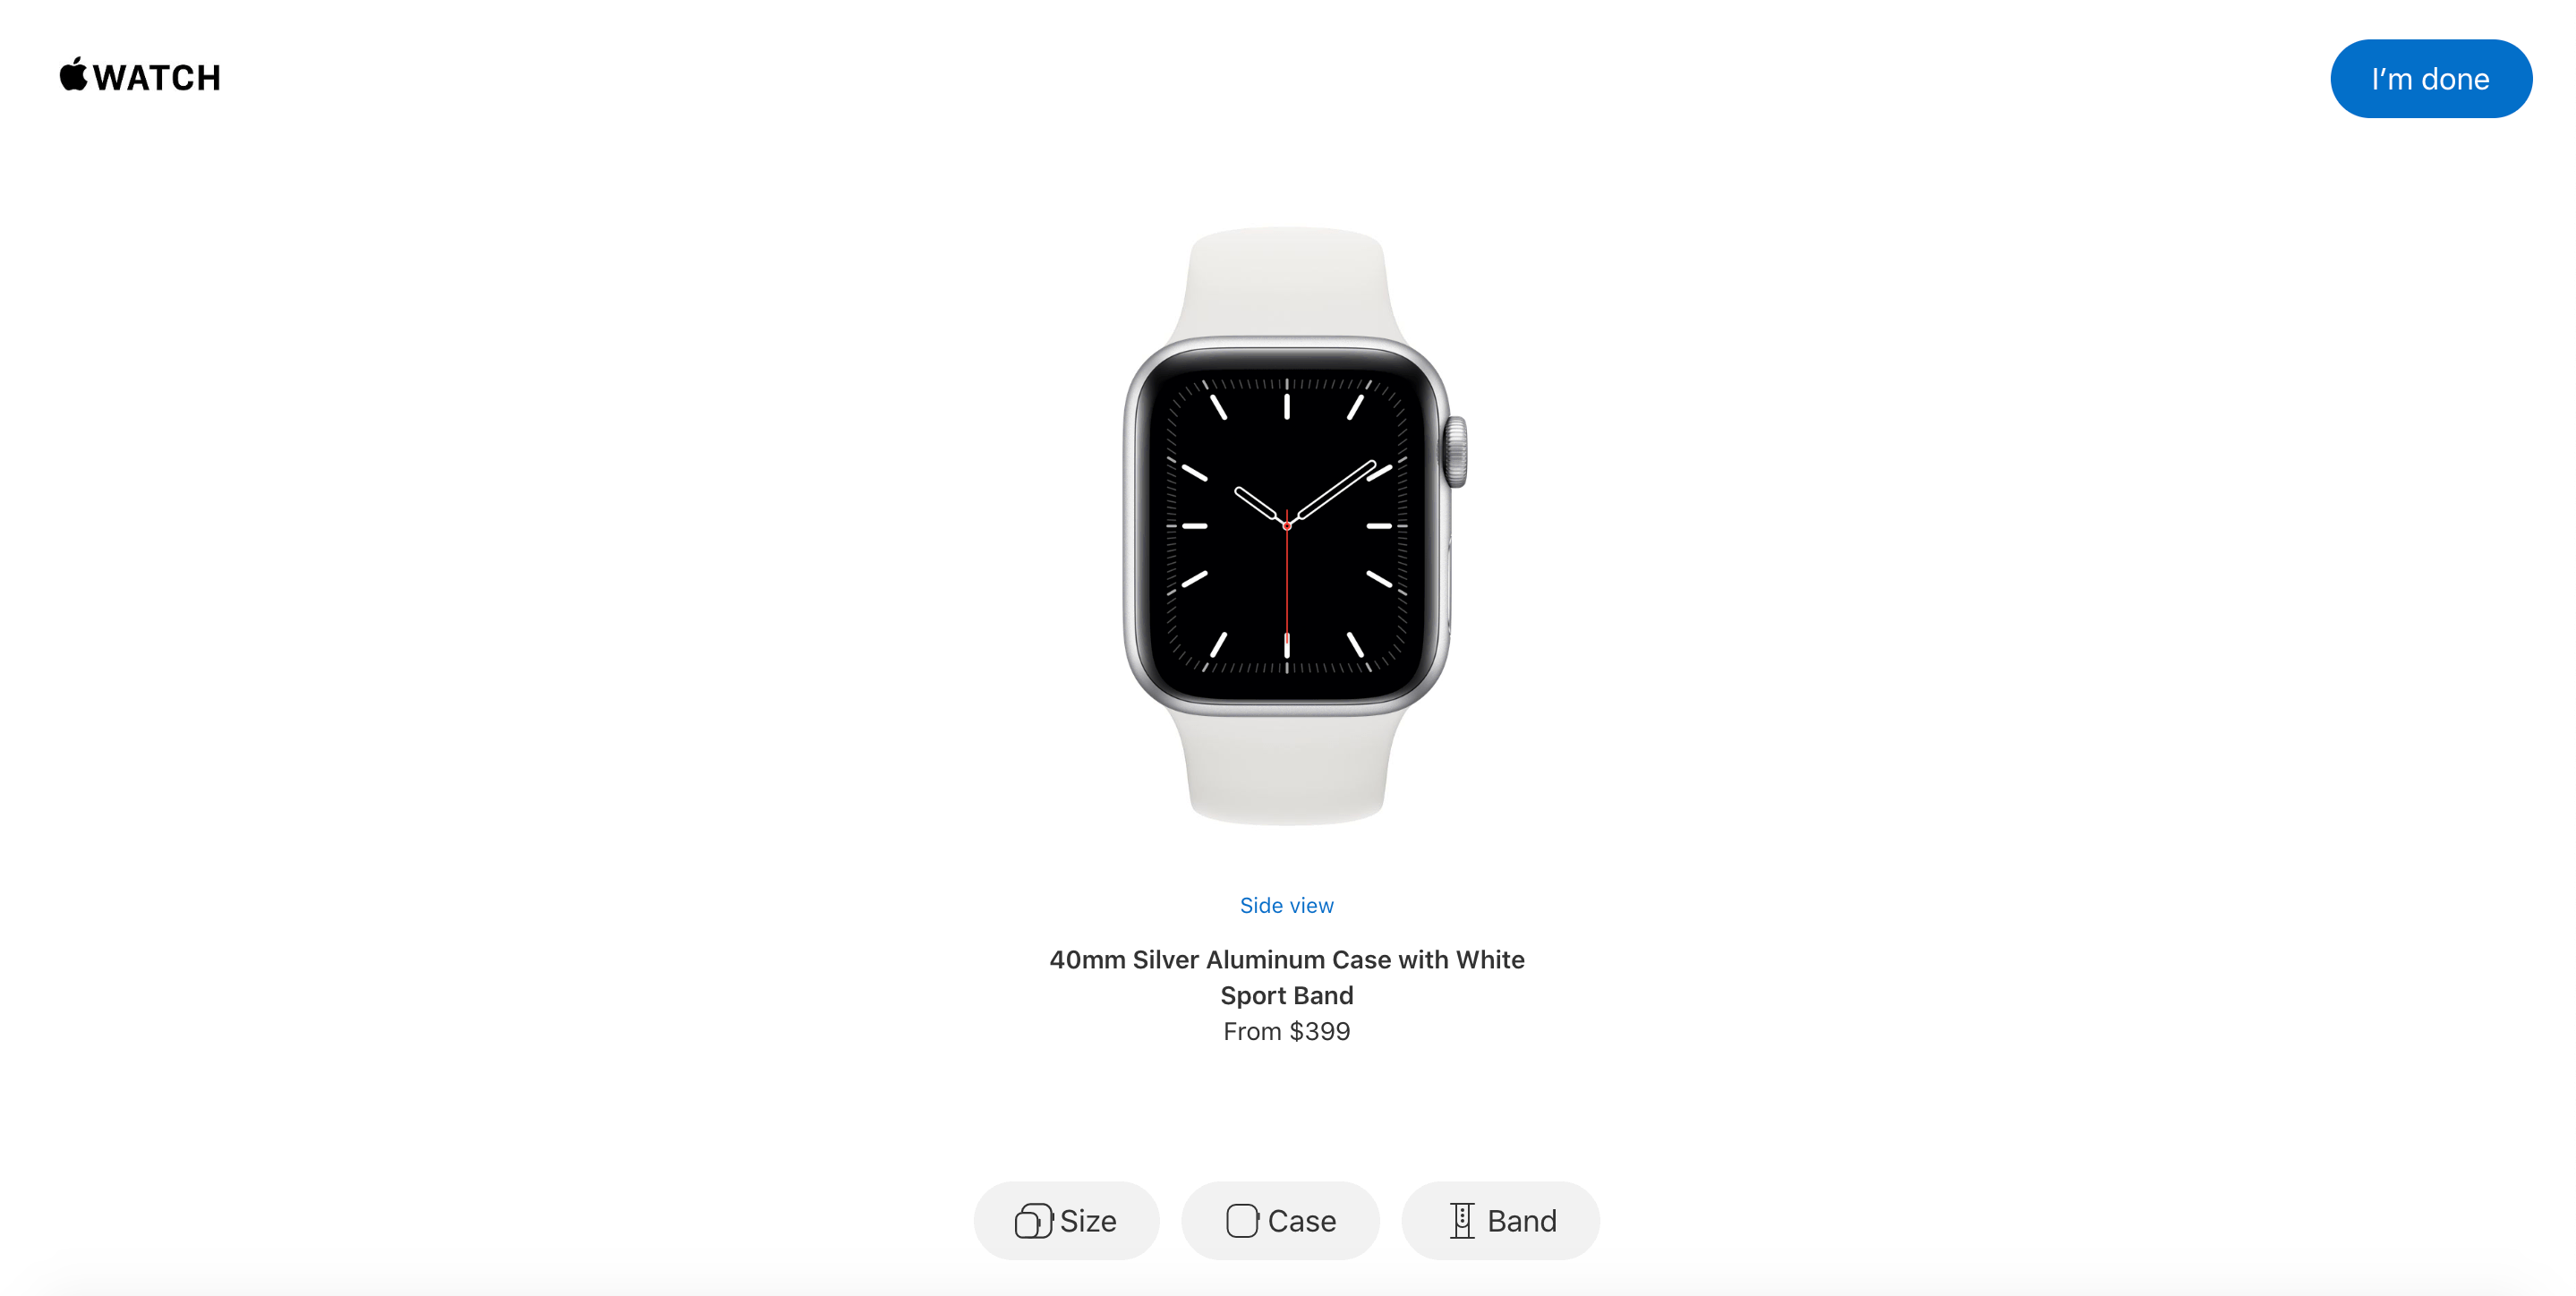 Apple Watch Studio Opening Screen